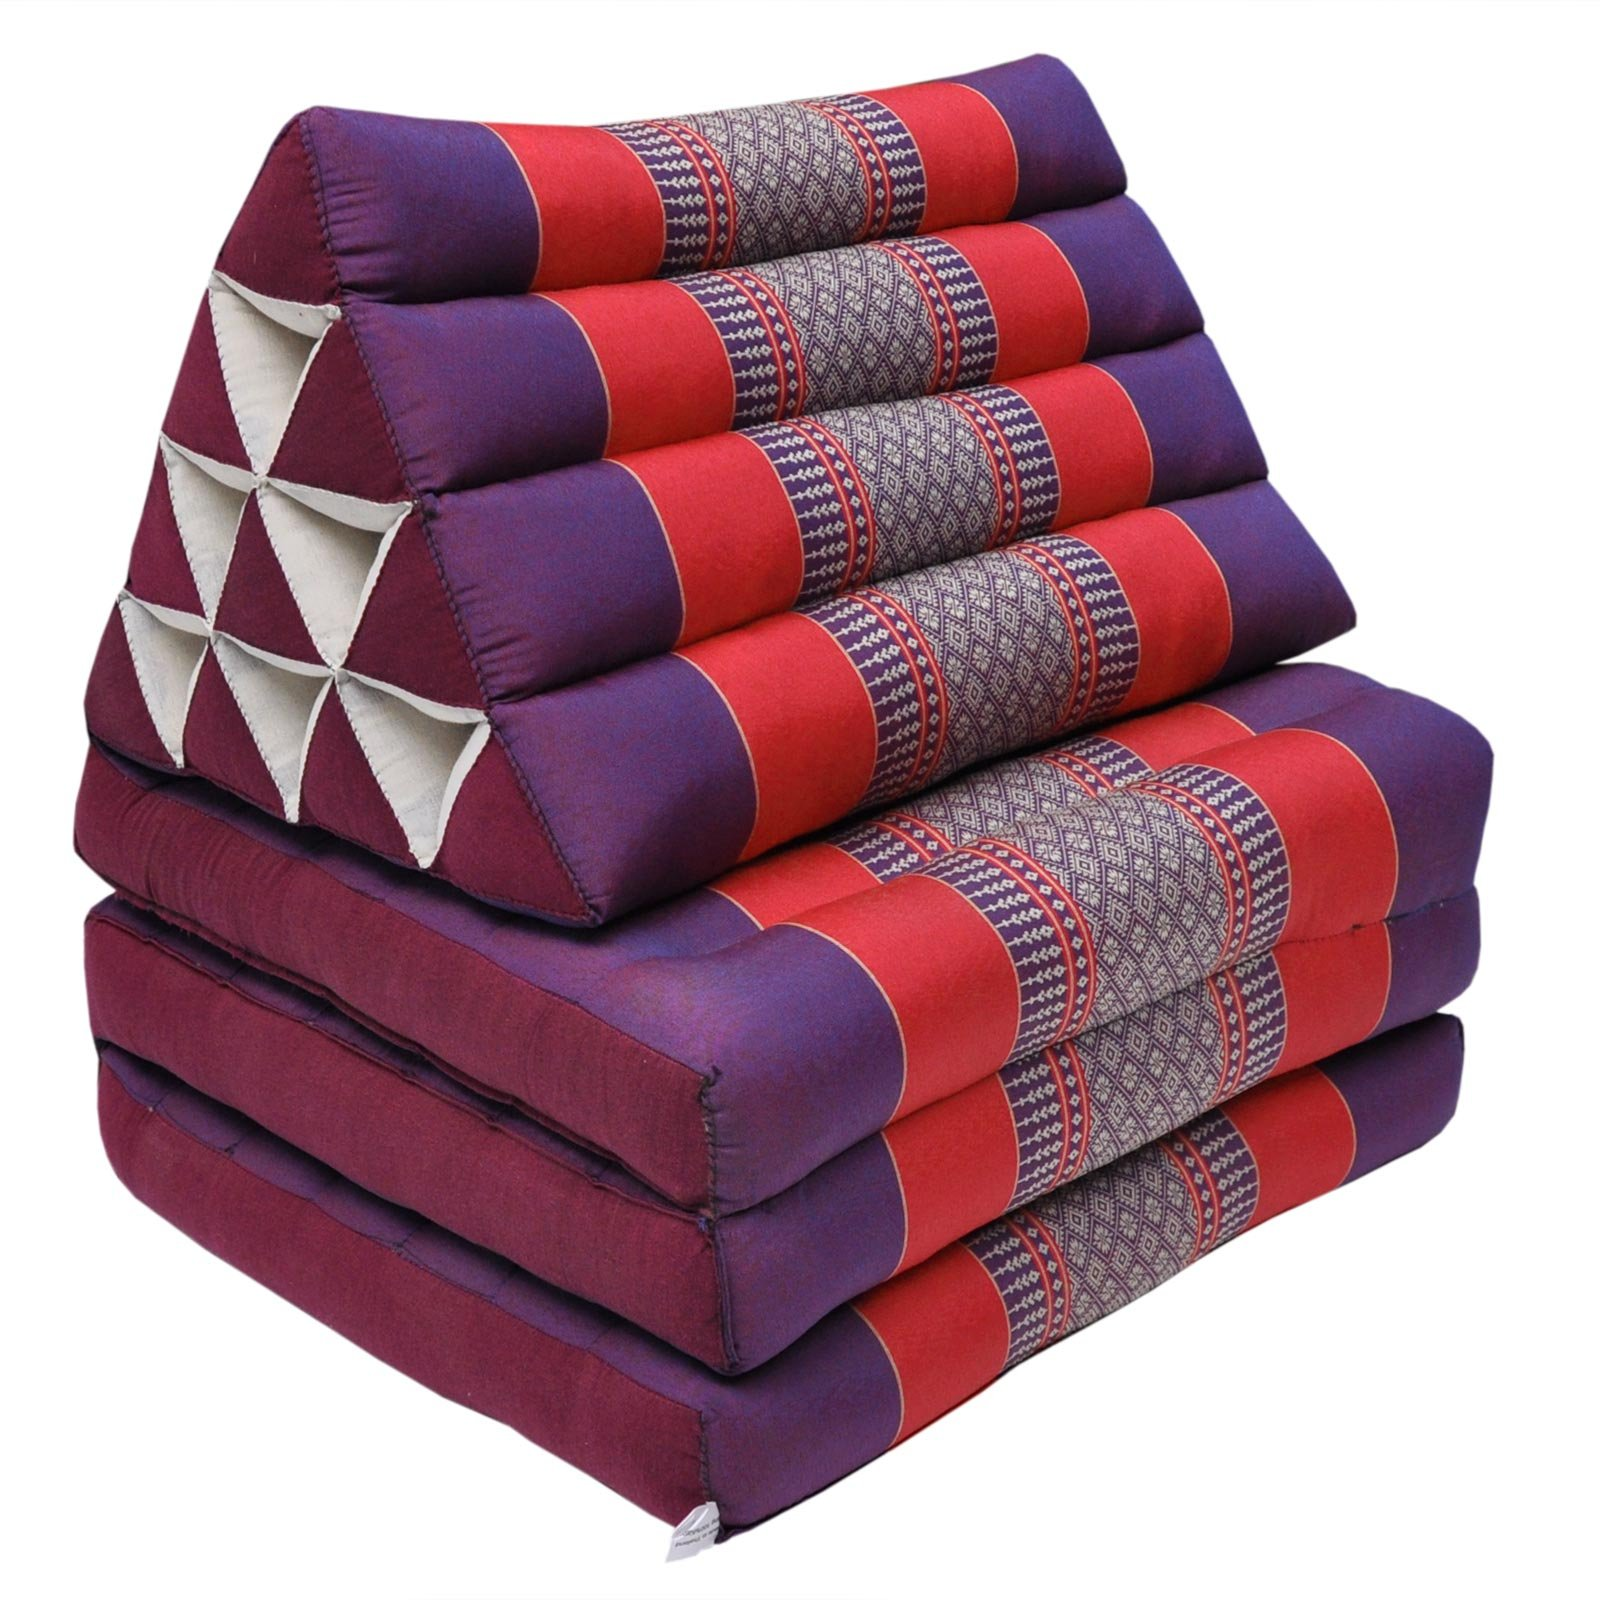 Thai mattress 3 folds with triangle cushion, relaxation, beach, pool, meditation garden Violet/Red (81503)